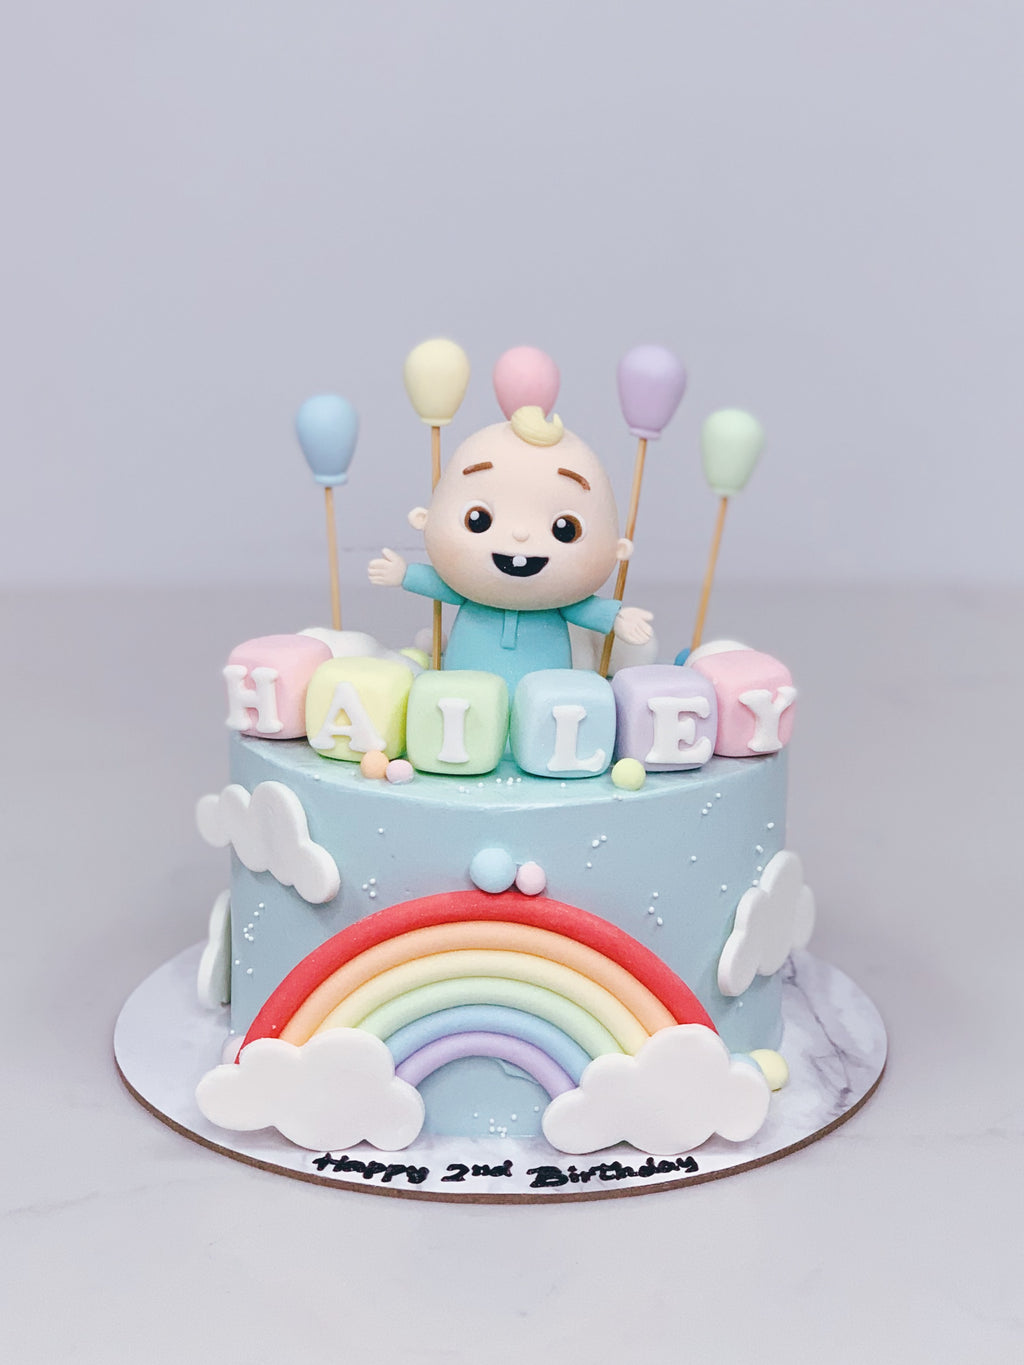 Baby JJ Cake with Rainbow, Clouds and Balloons